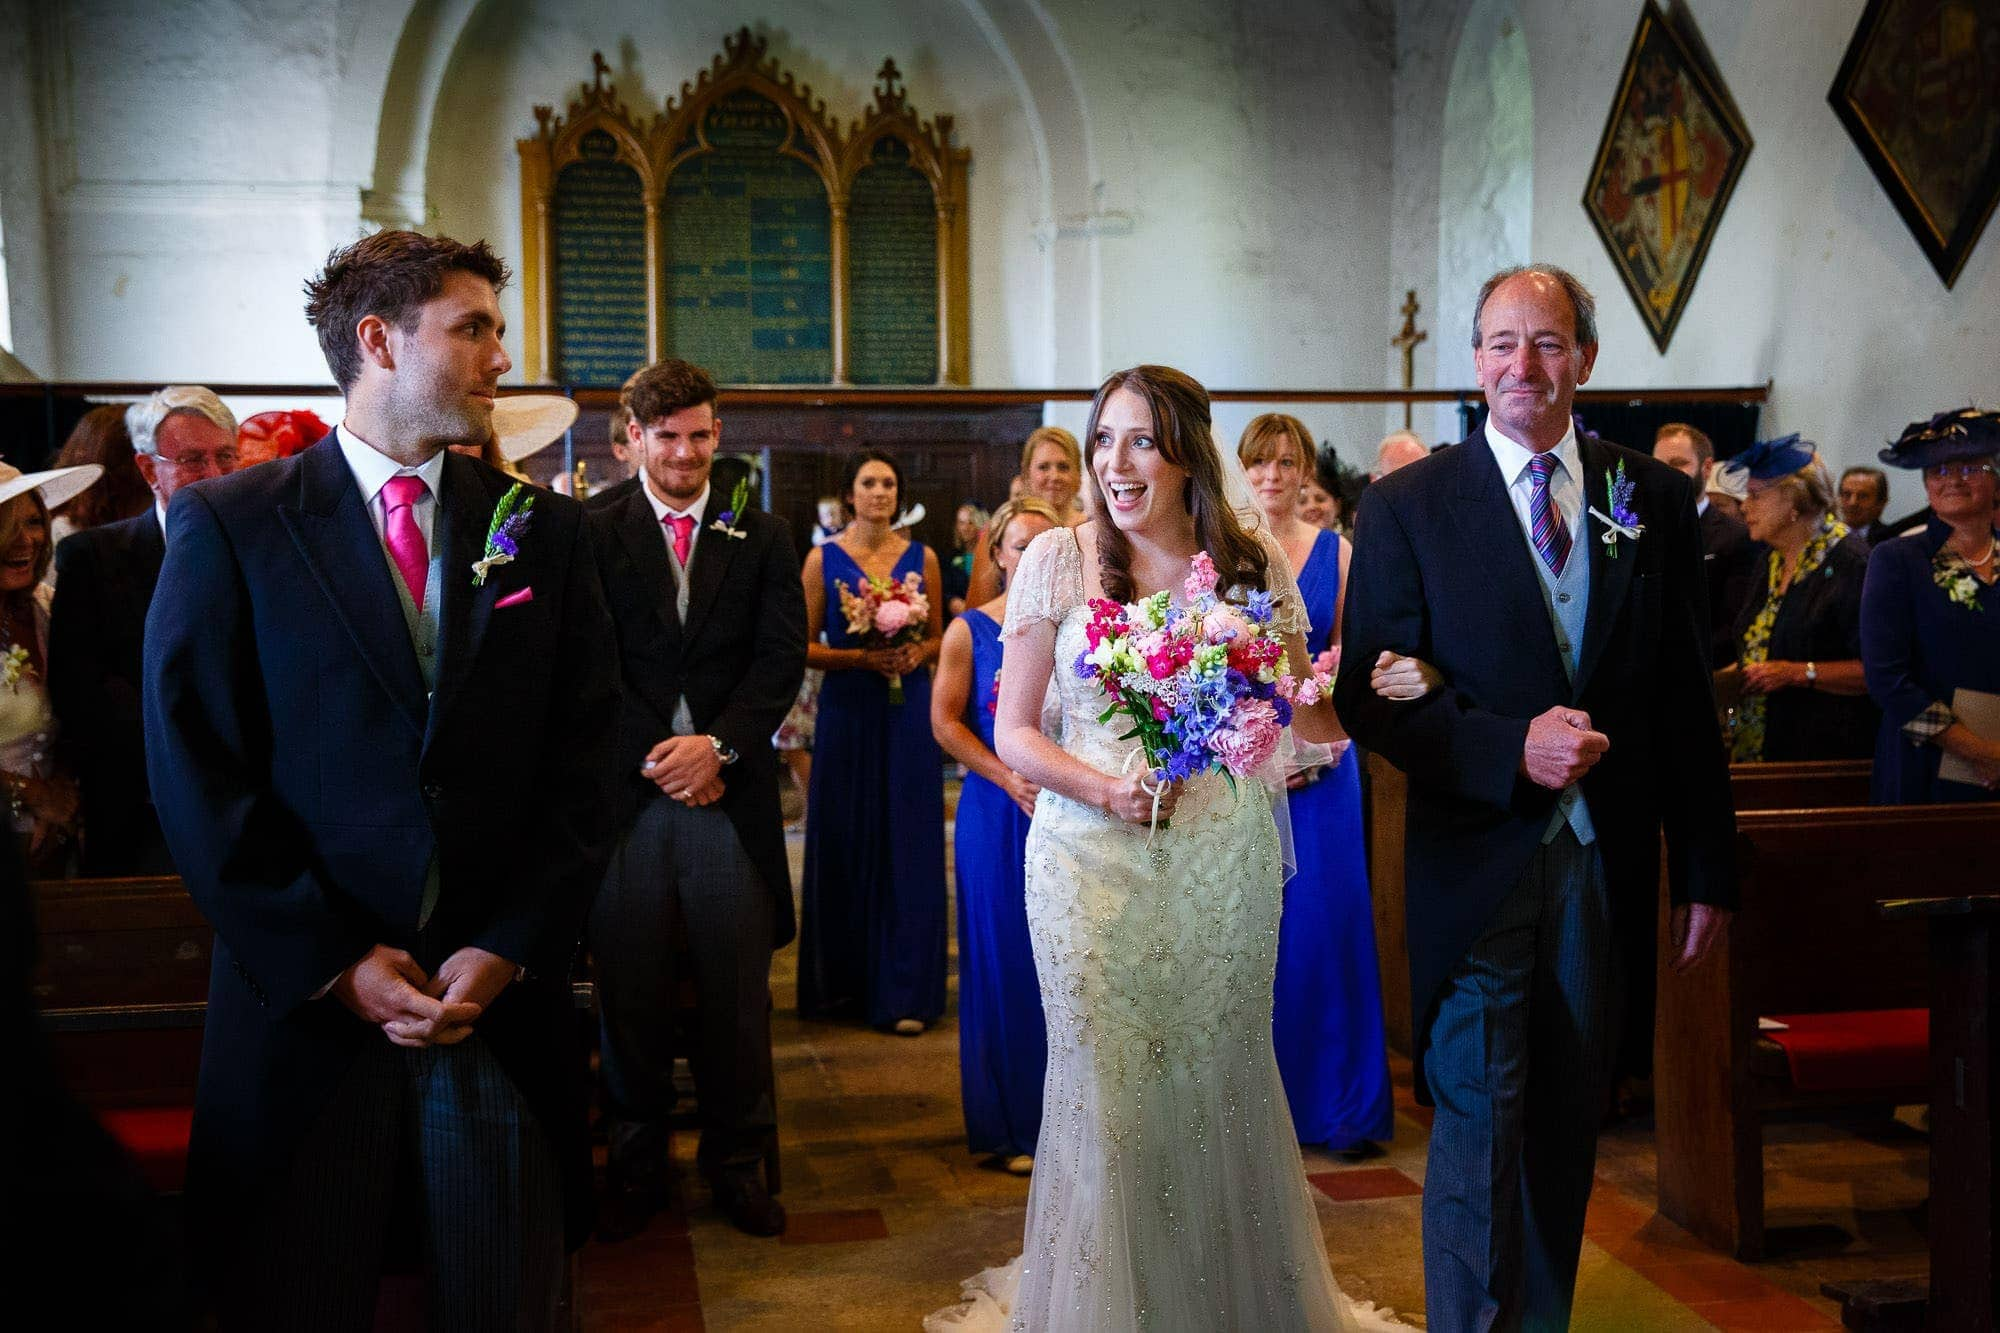 Wedding Ceremony at Warnford Church, West Meon